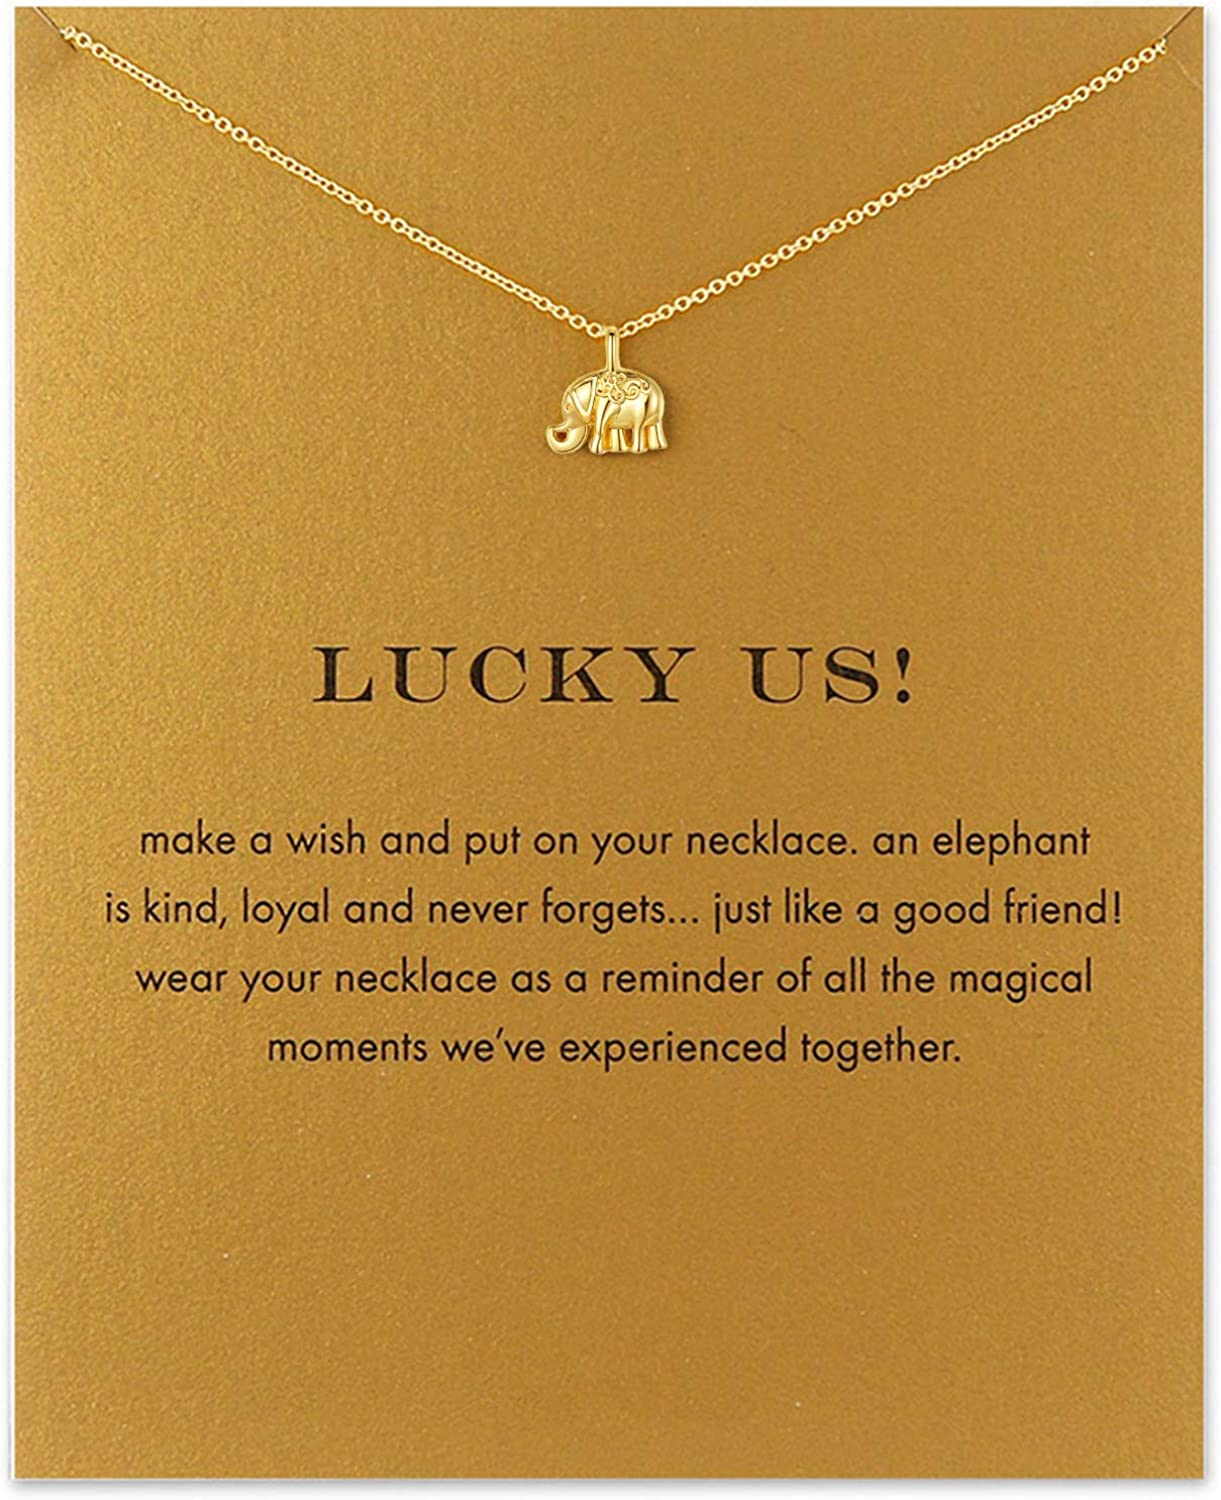 Baydurcan Friendship Anchor Compass Necklace Good Luck Elephant Pendant Chain Necklace with Message Card Gift Card